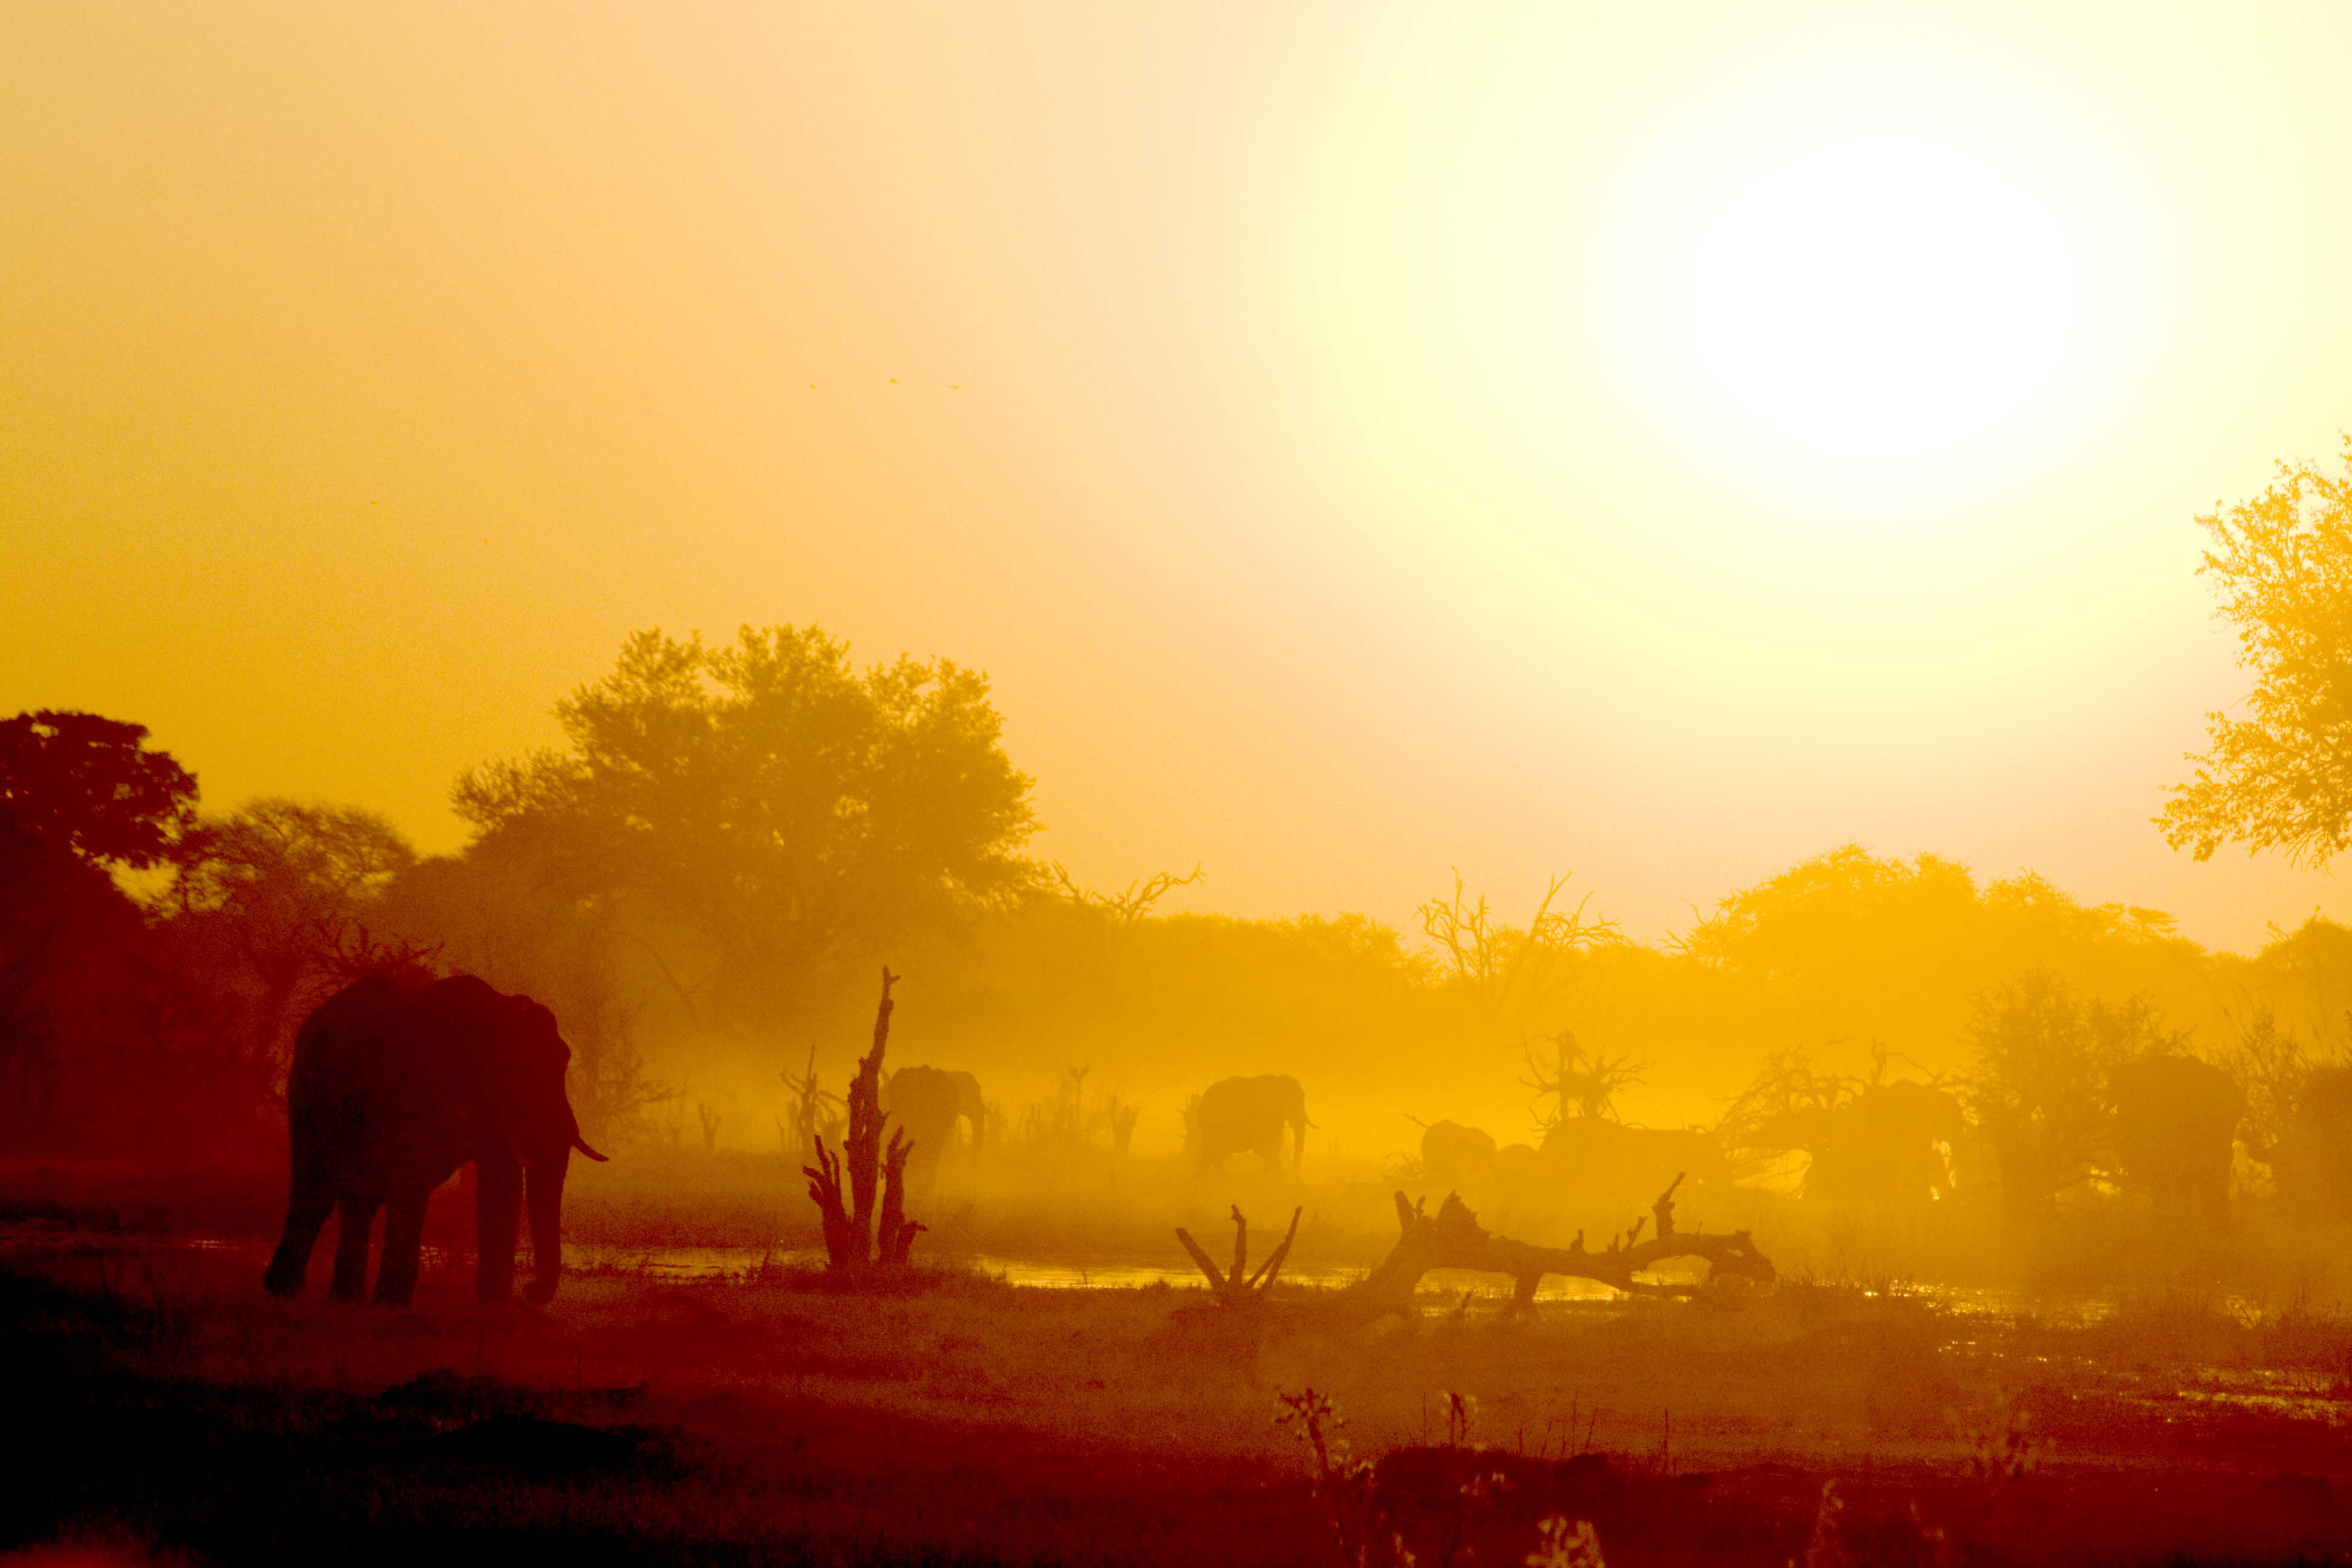 Elephants in Sunset, Moremi NP, Botswana